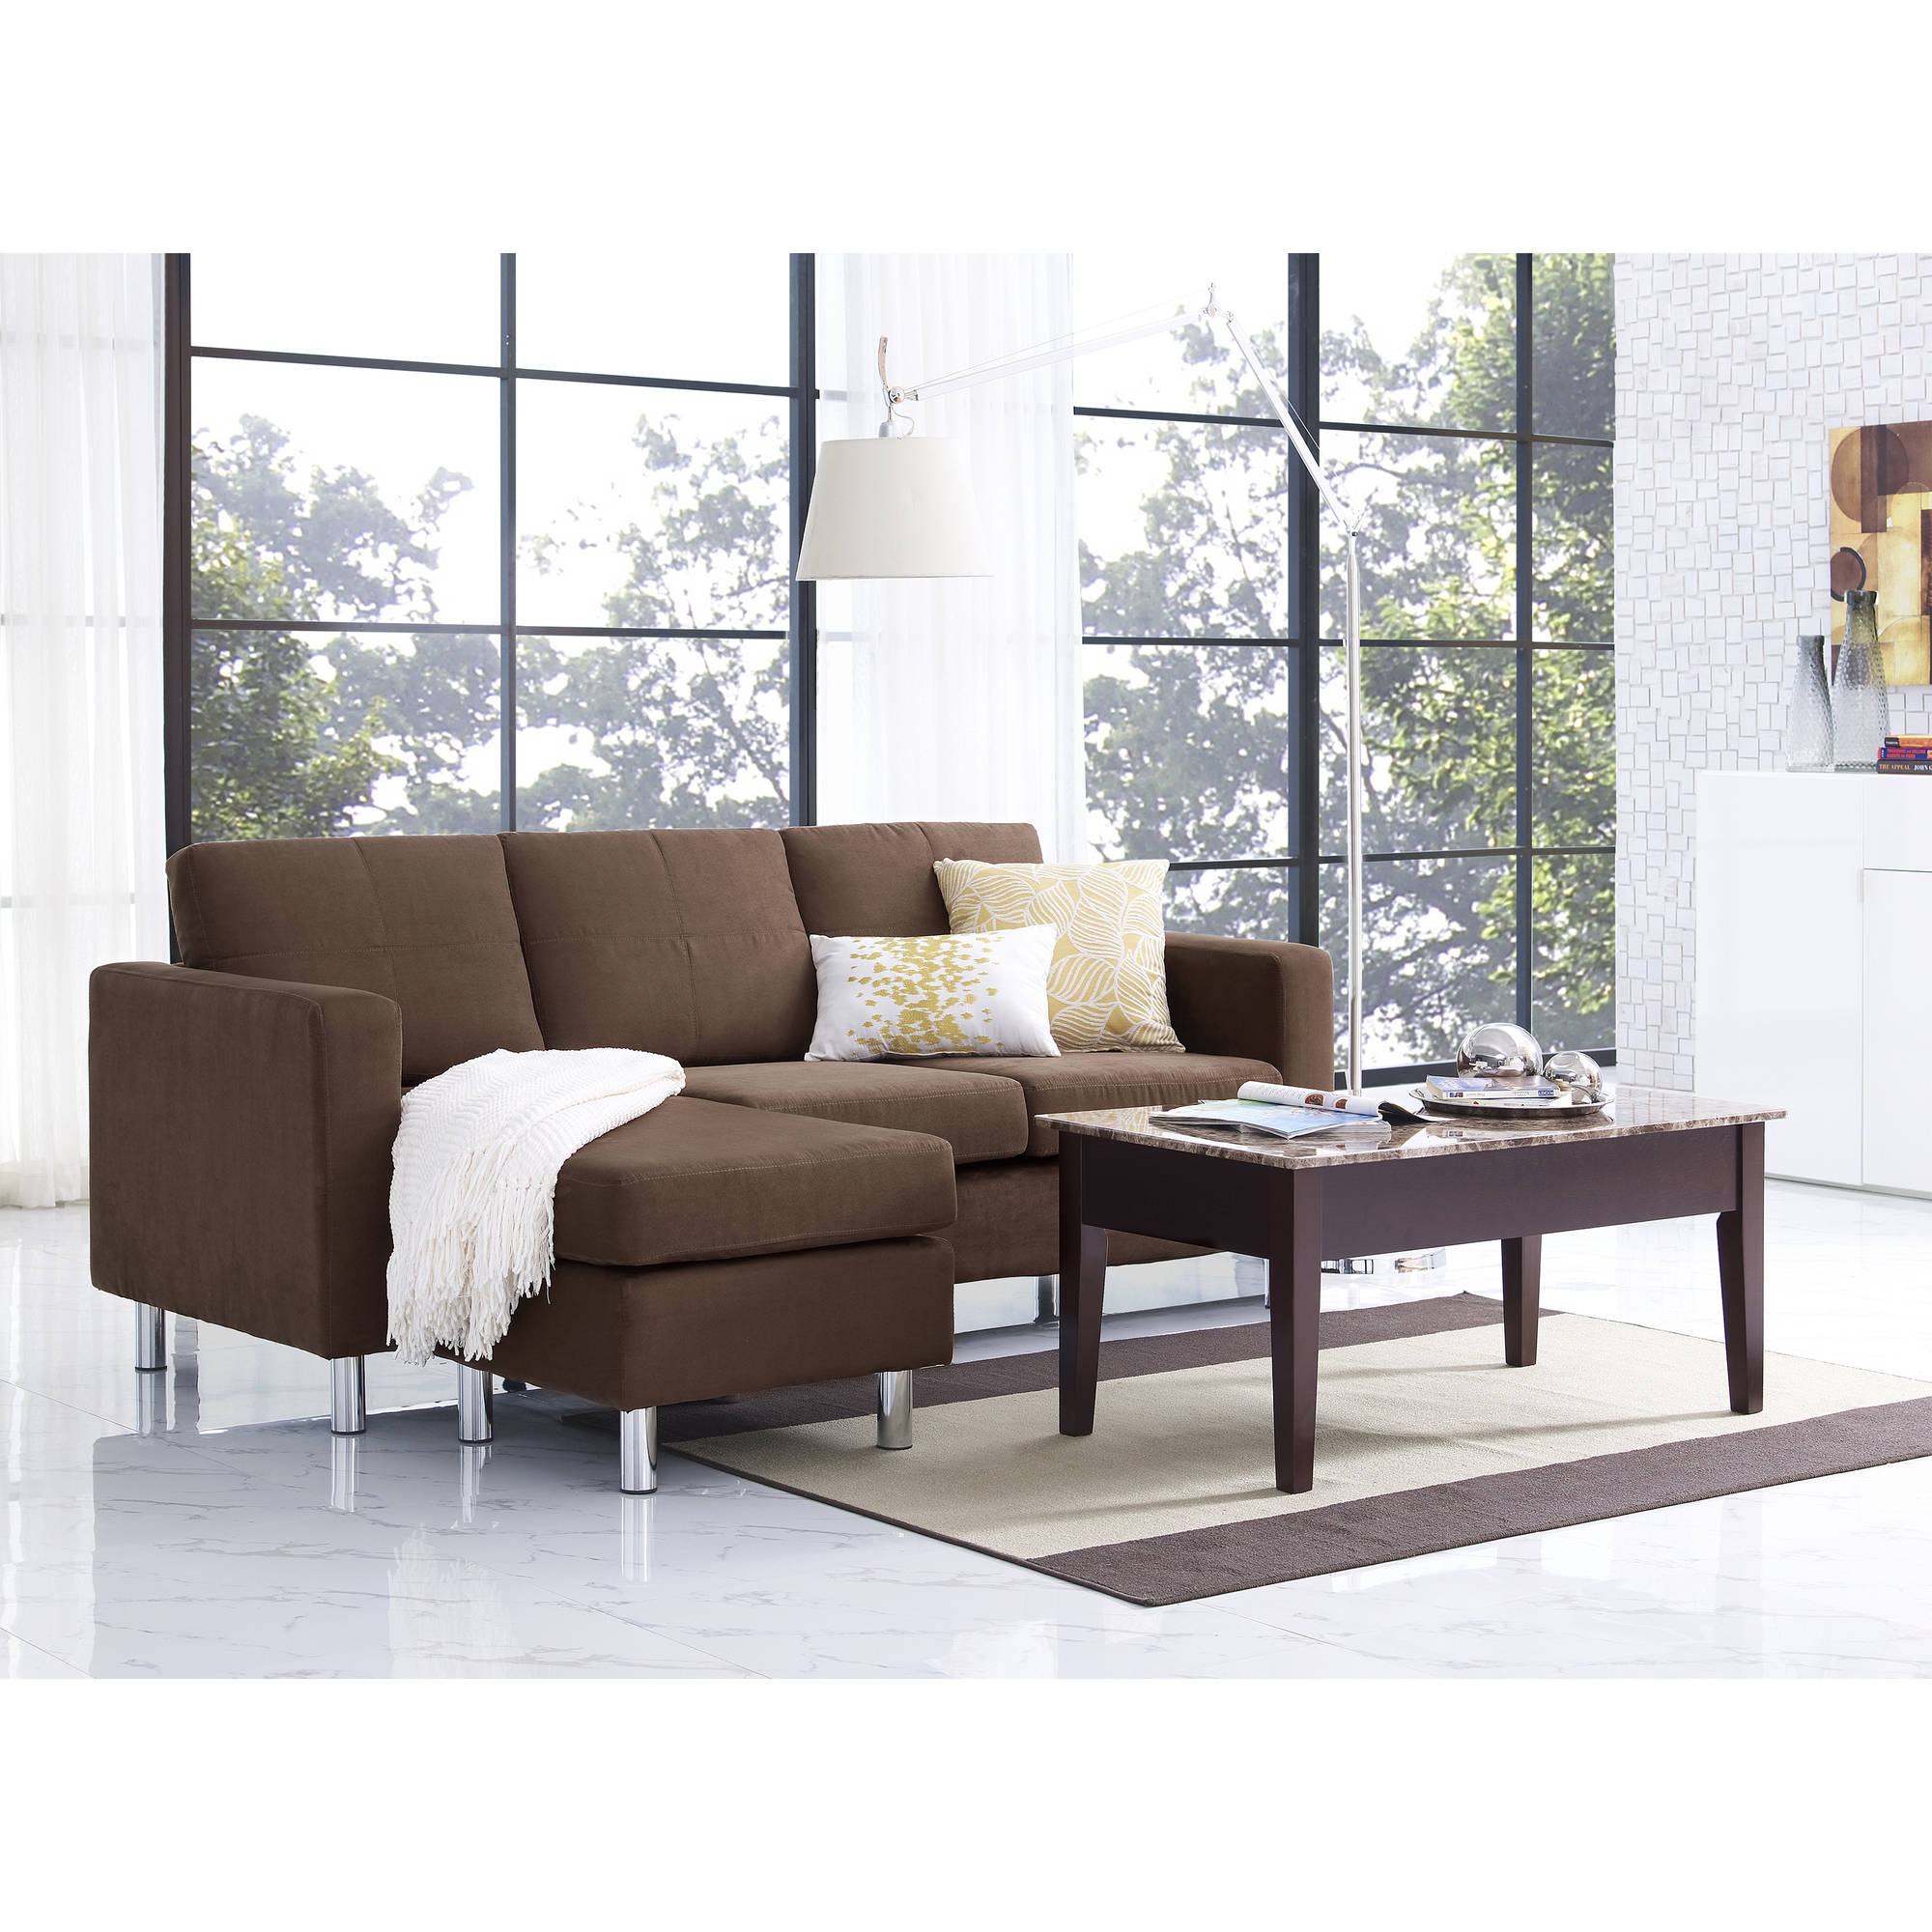 dorel living small spaces sectional sofa multiple colors walmartcom